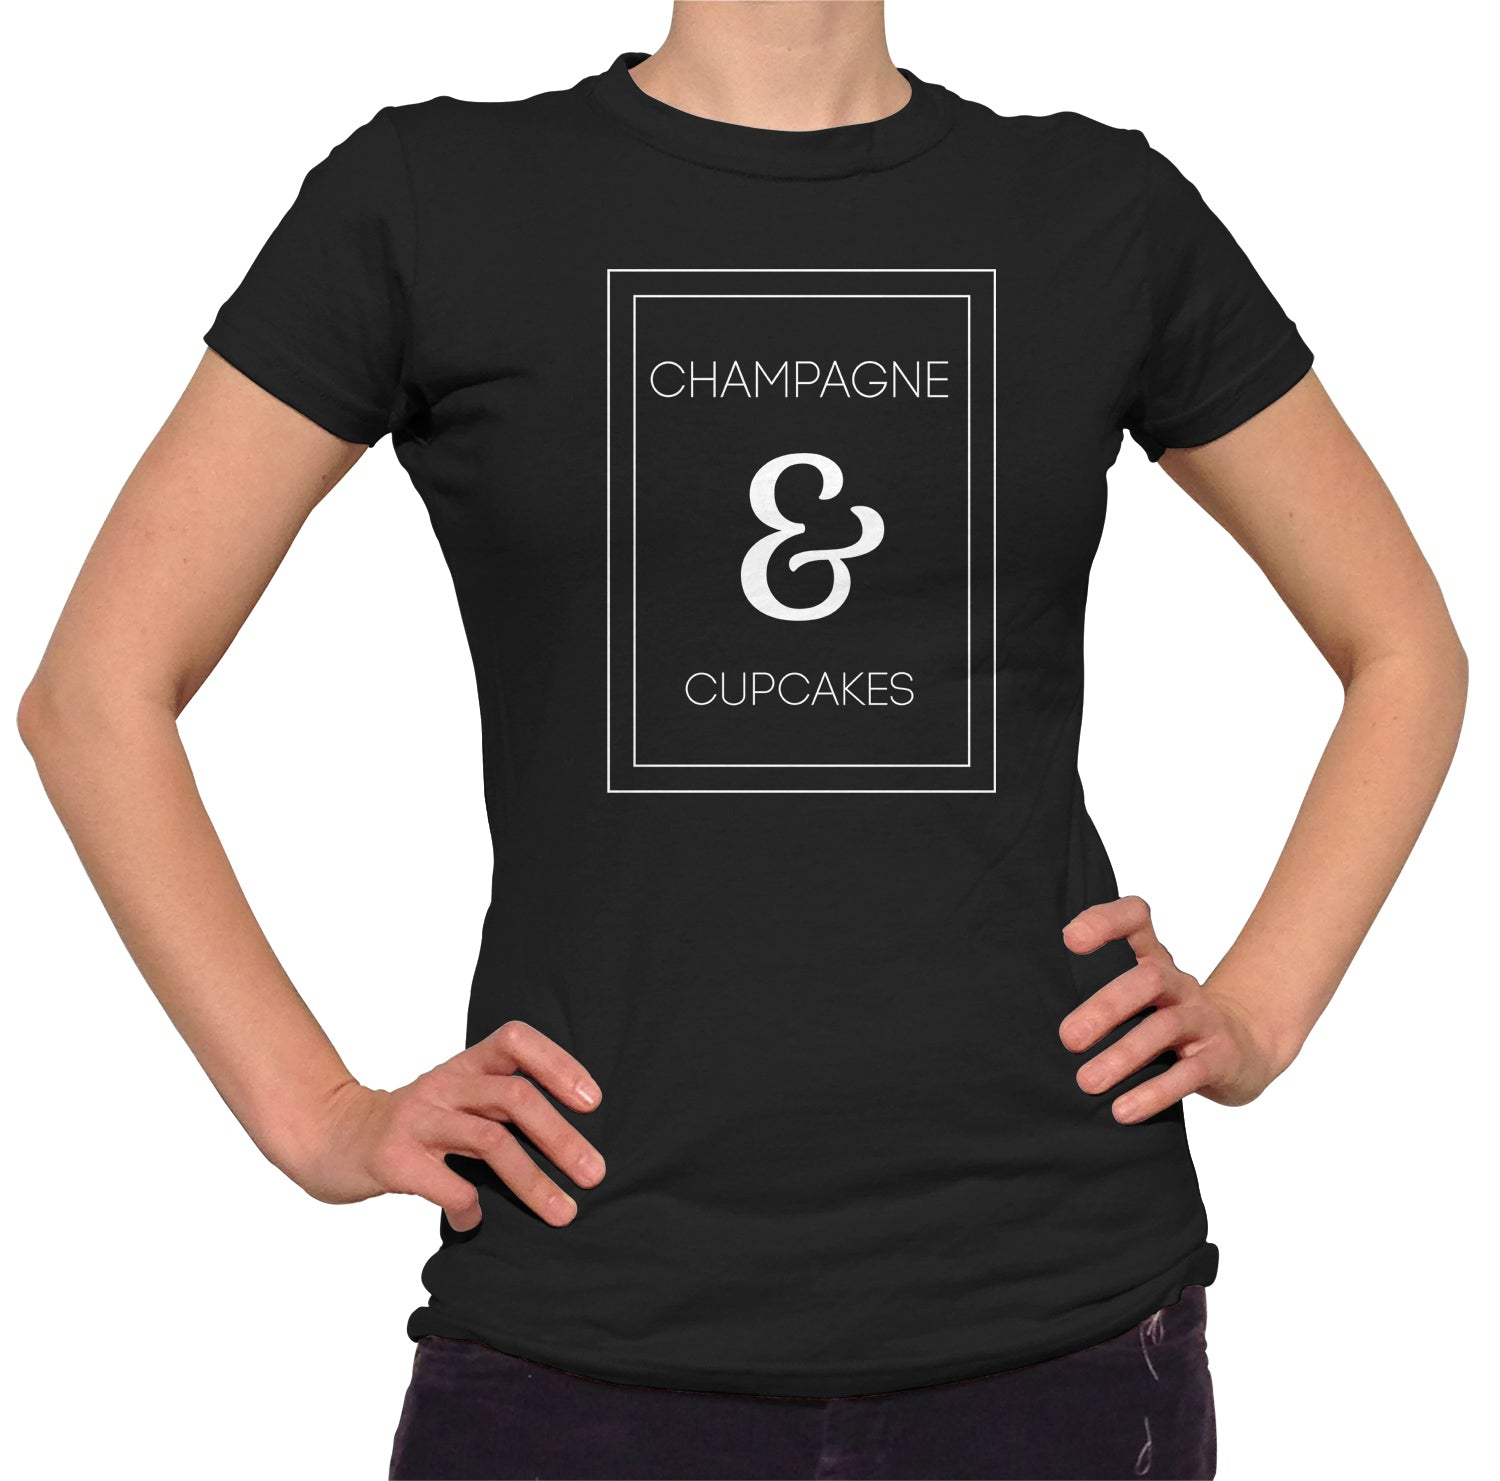 Women's Champagne and Cupcakes T-Shirt - Juniors Fit